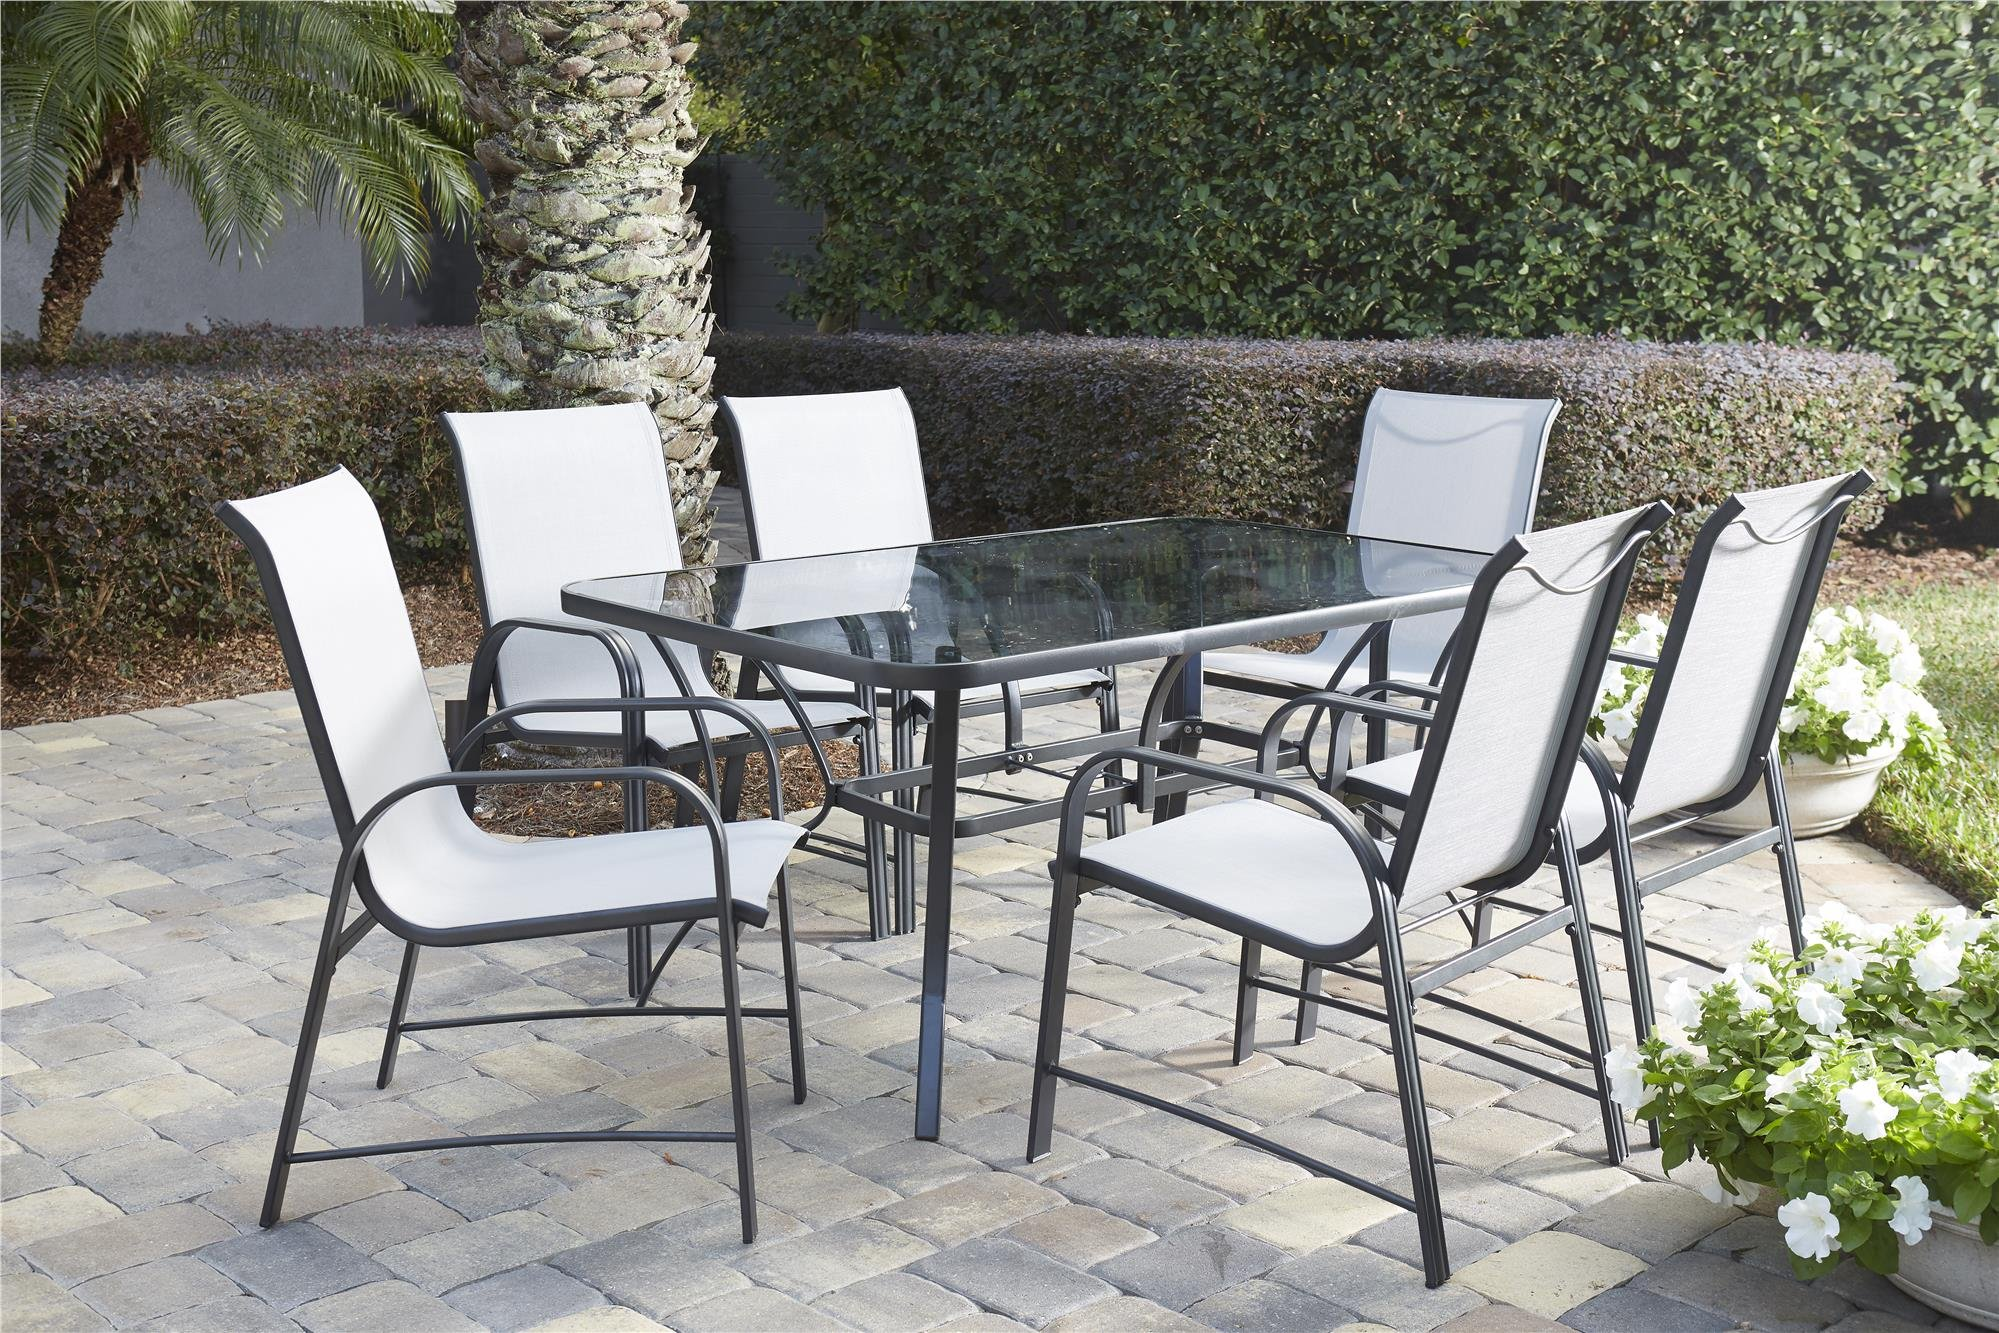 COSCO 88647GLGE Outdoor Living 7 Piece Paloma Steel Patio Dining Set, Light/Dark Gray by Cosco Outdoor Living (Image #4)